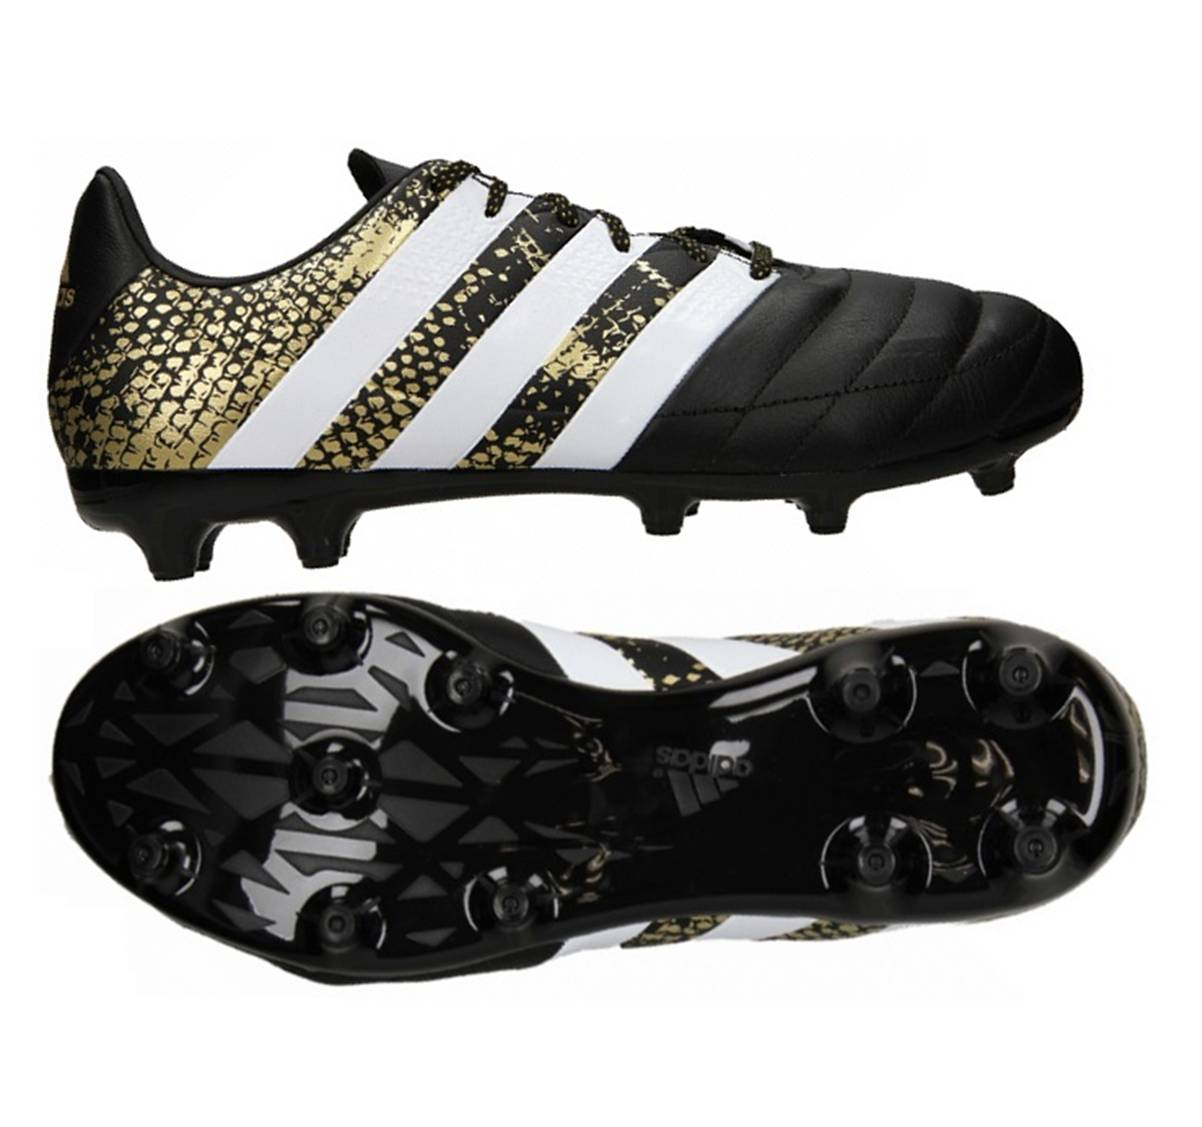 buy online fff13 e4ca3 ADIDAS MESSI 16.3 LEATHER FG: MEN     Sports and Games Ltd.